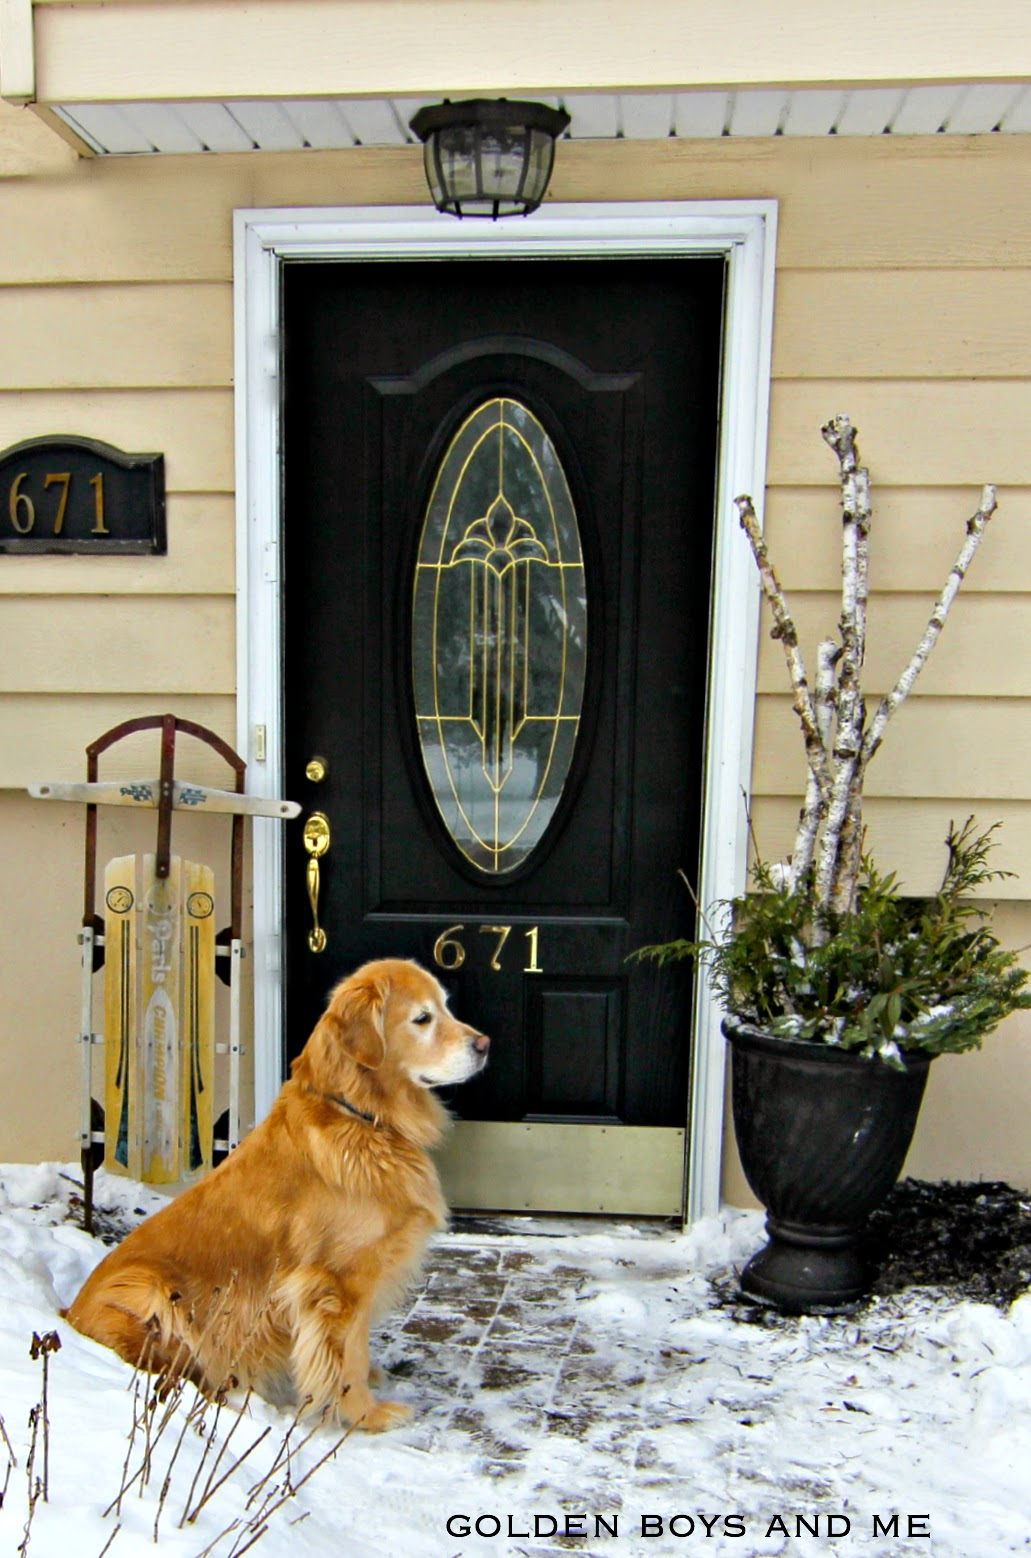 Golden Retriever in snow-www.goldenboysandme.com